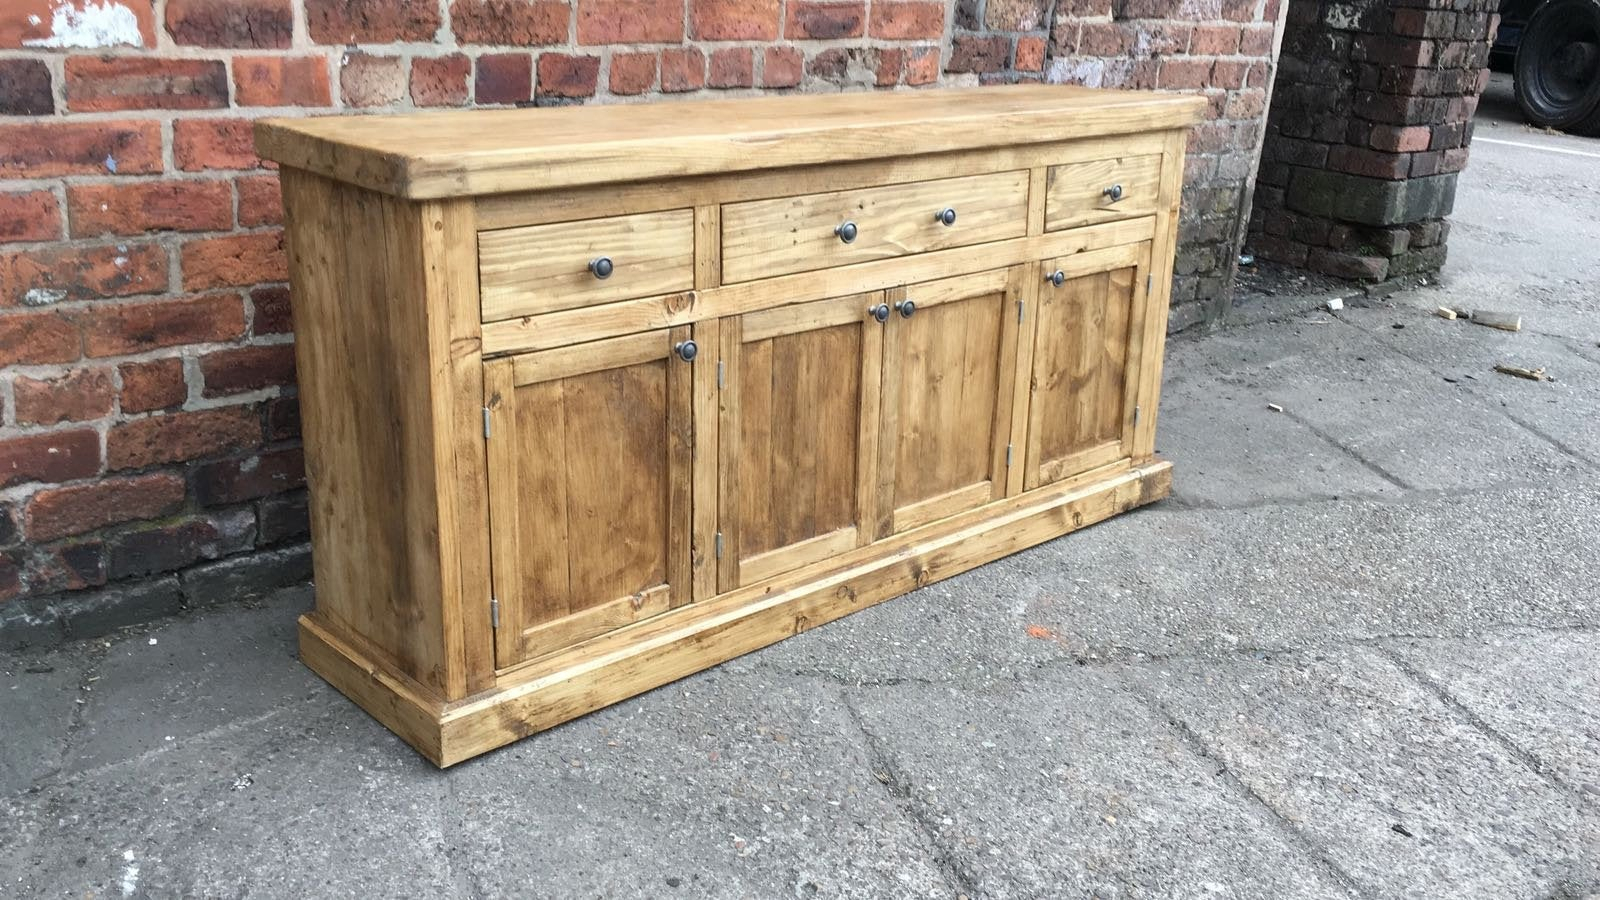 Inspiration about Made To Measure Solid Reclaimed Wood Sideboard. Contemporary Industrial Shaker Rustic Dresser Unit Aged Oak Farmhouse 3 Drawer Over Cupboard Intended For 2018 Mcdonnell Sideboards (#11 of 20)